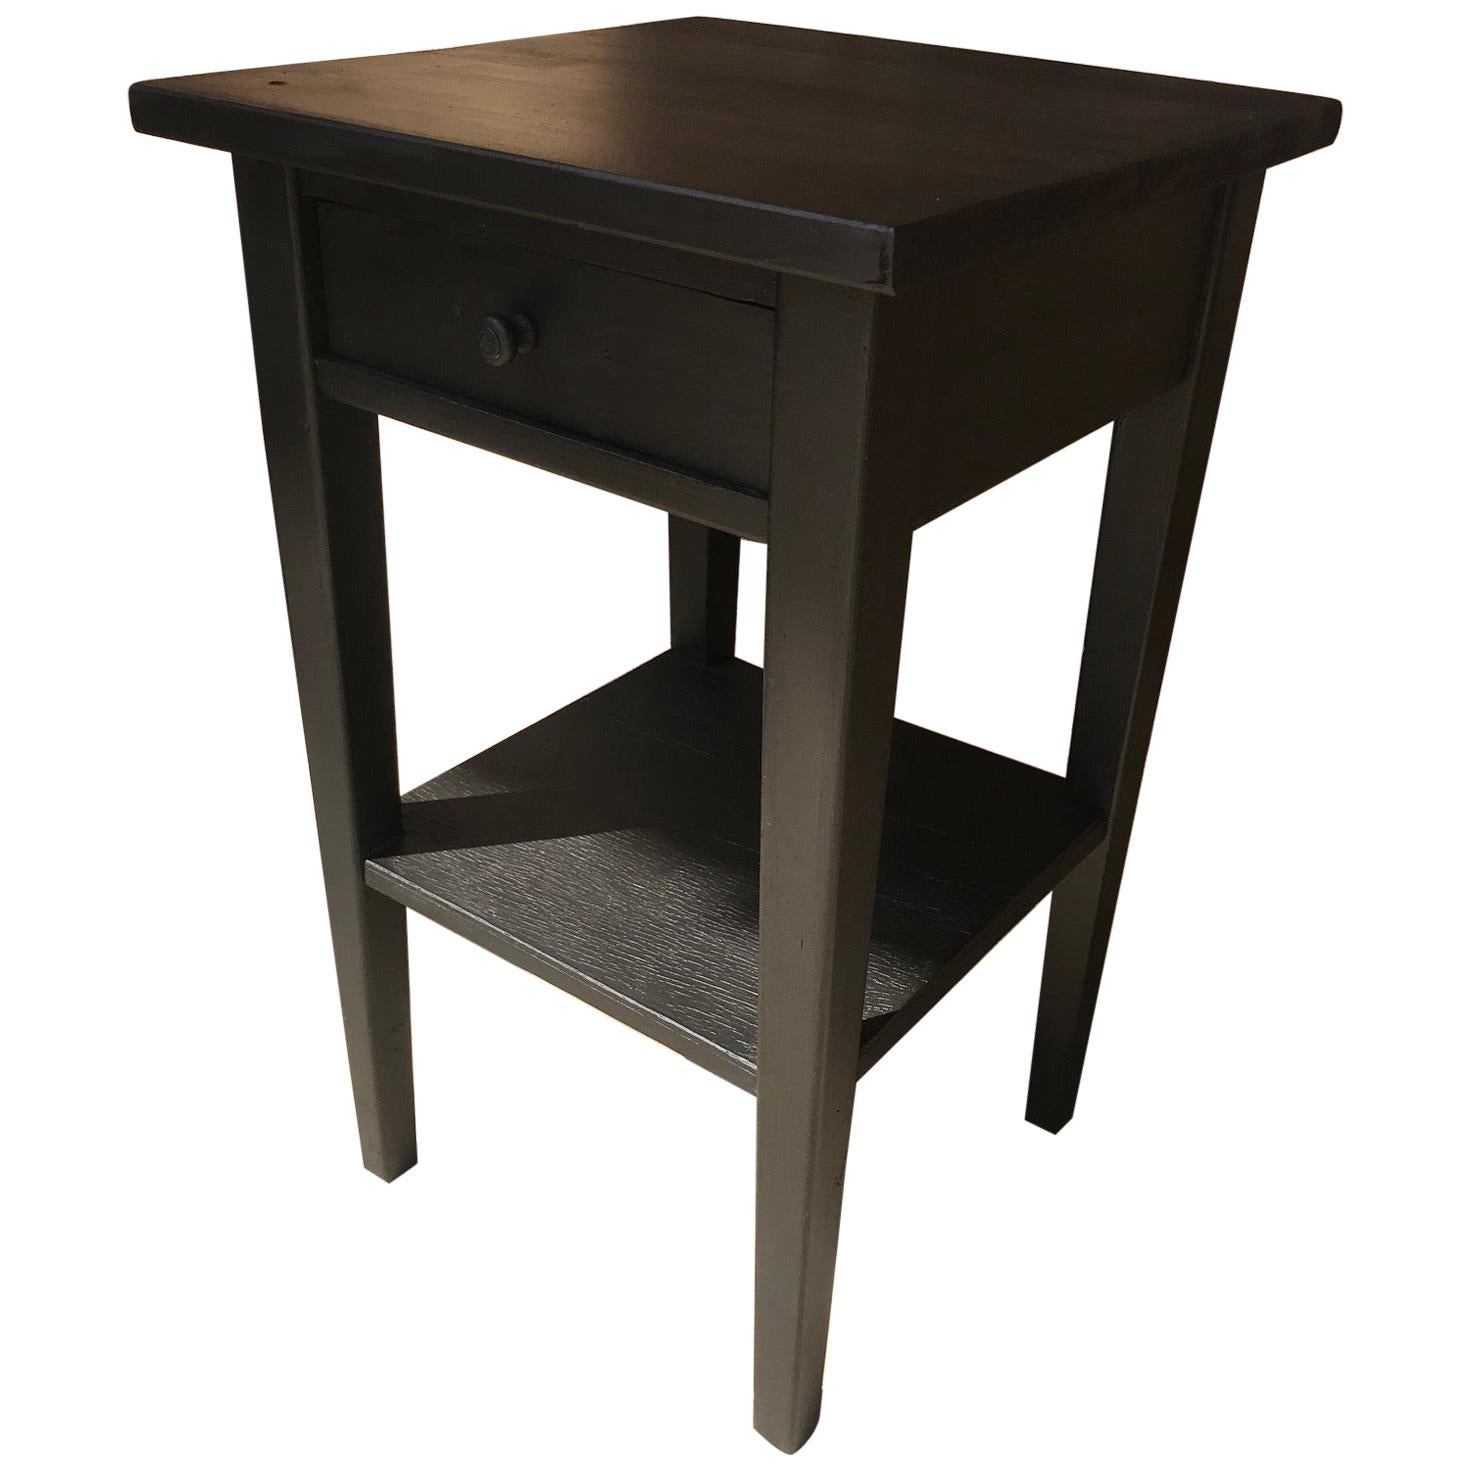 20th Century French Black Painted Fir Side Table, 1920s